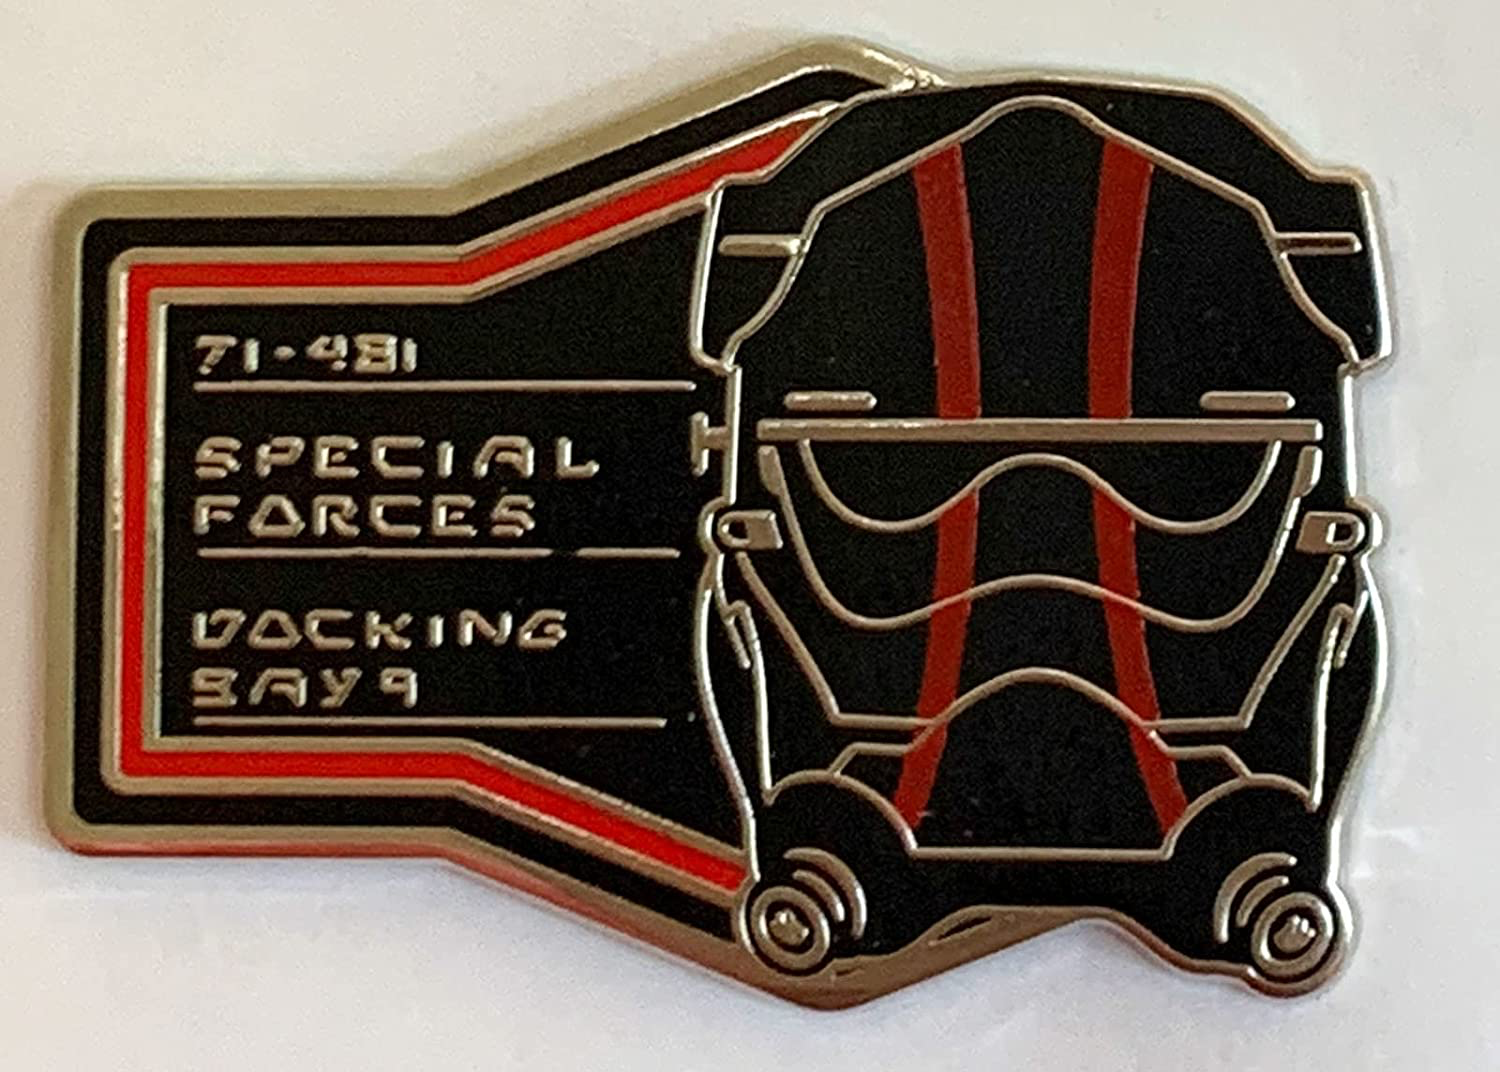 SWGE First Order Tie Pilot Helmet Special Forces Docking Bay 9 Pin